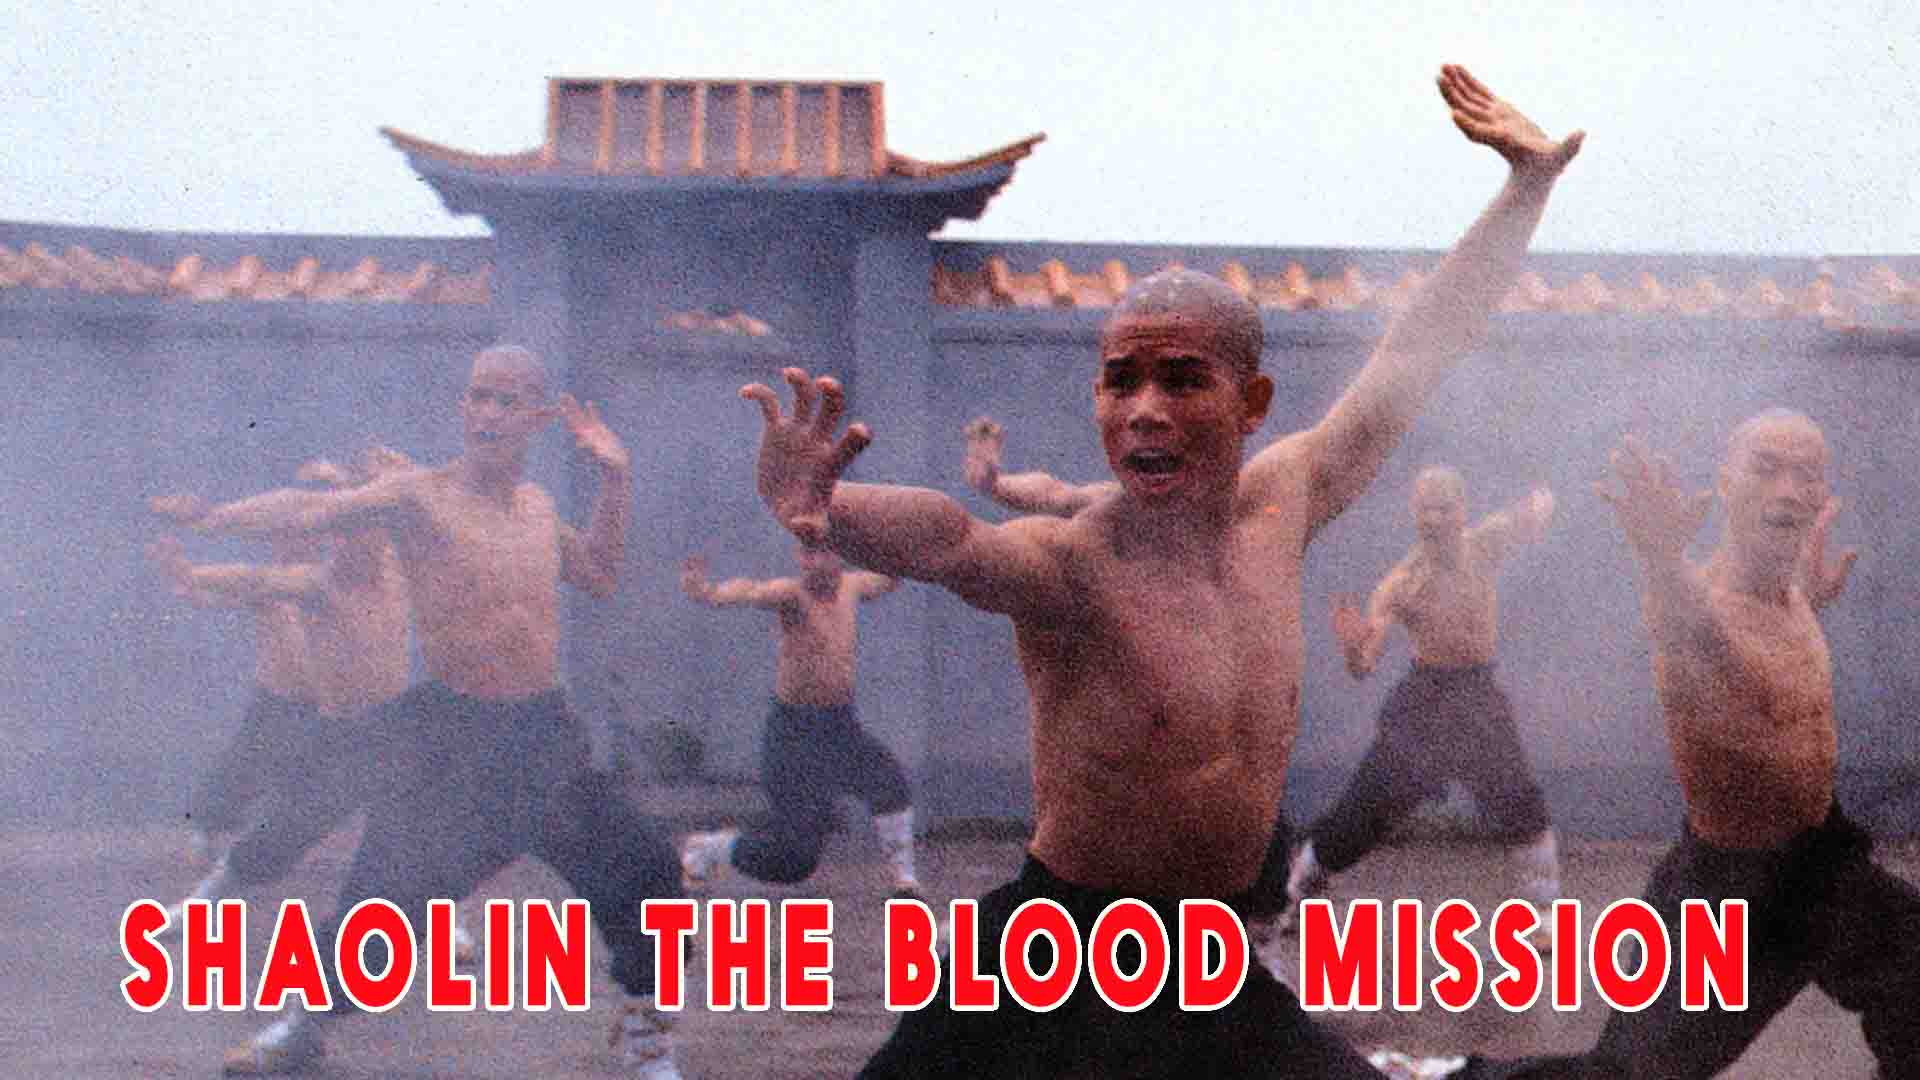 Shaolin The Blood Mission